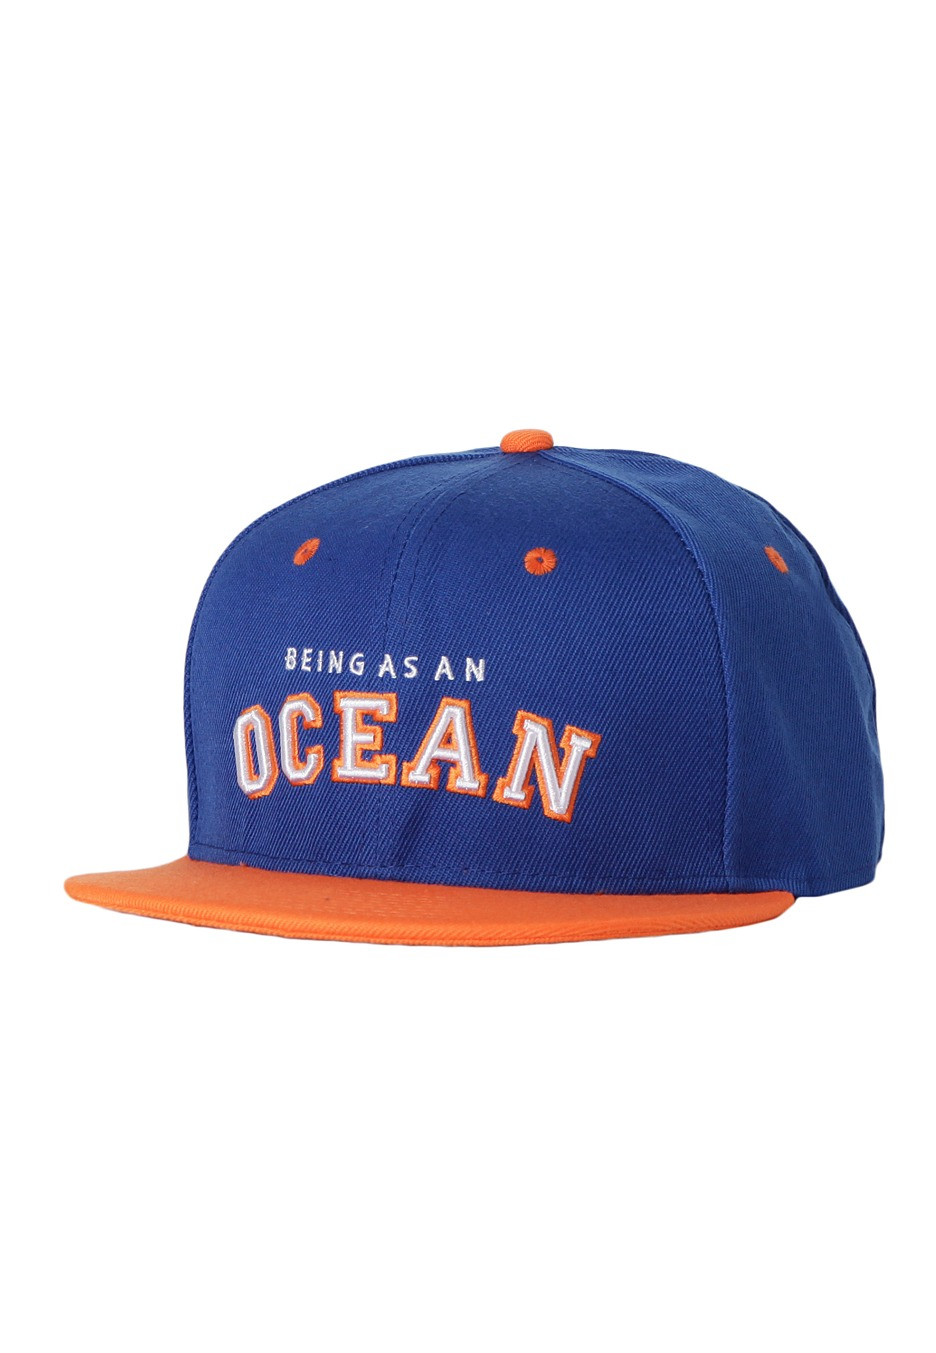 Being As An Ocean - Ocean Blue Orange Snapback - Cap - Official Melodic  Hardcore Merchandise Shop - Impericon.com UK 5dae90841e3